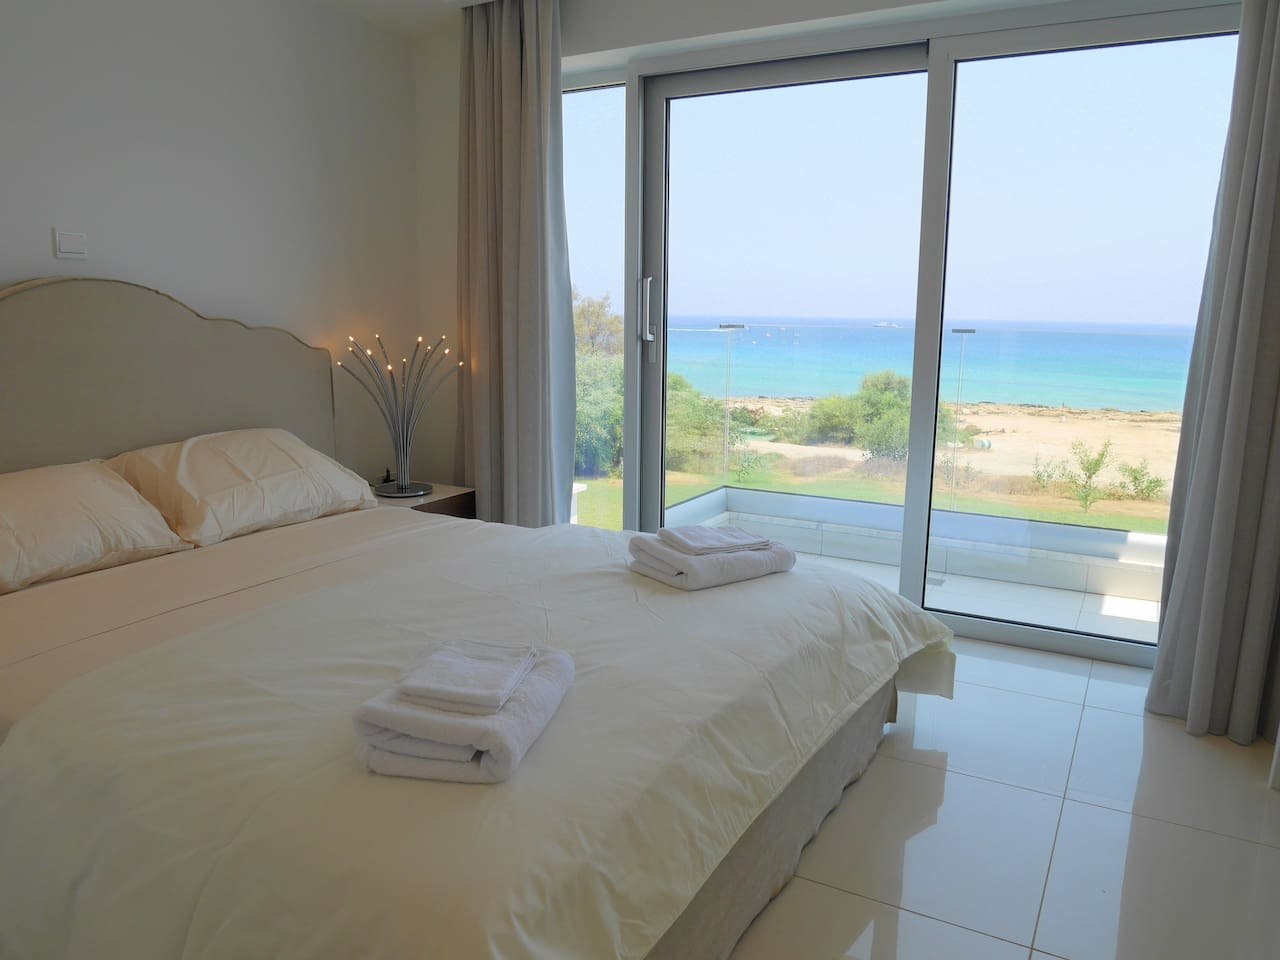 Apartment 2 Bed Luxury Apt with Large Communal Pool - B3-101 photo 26059203